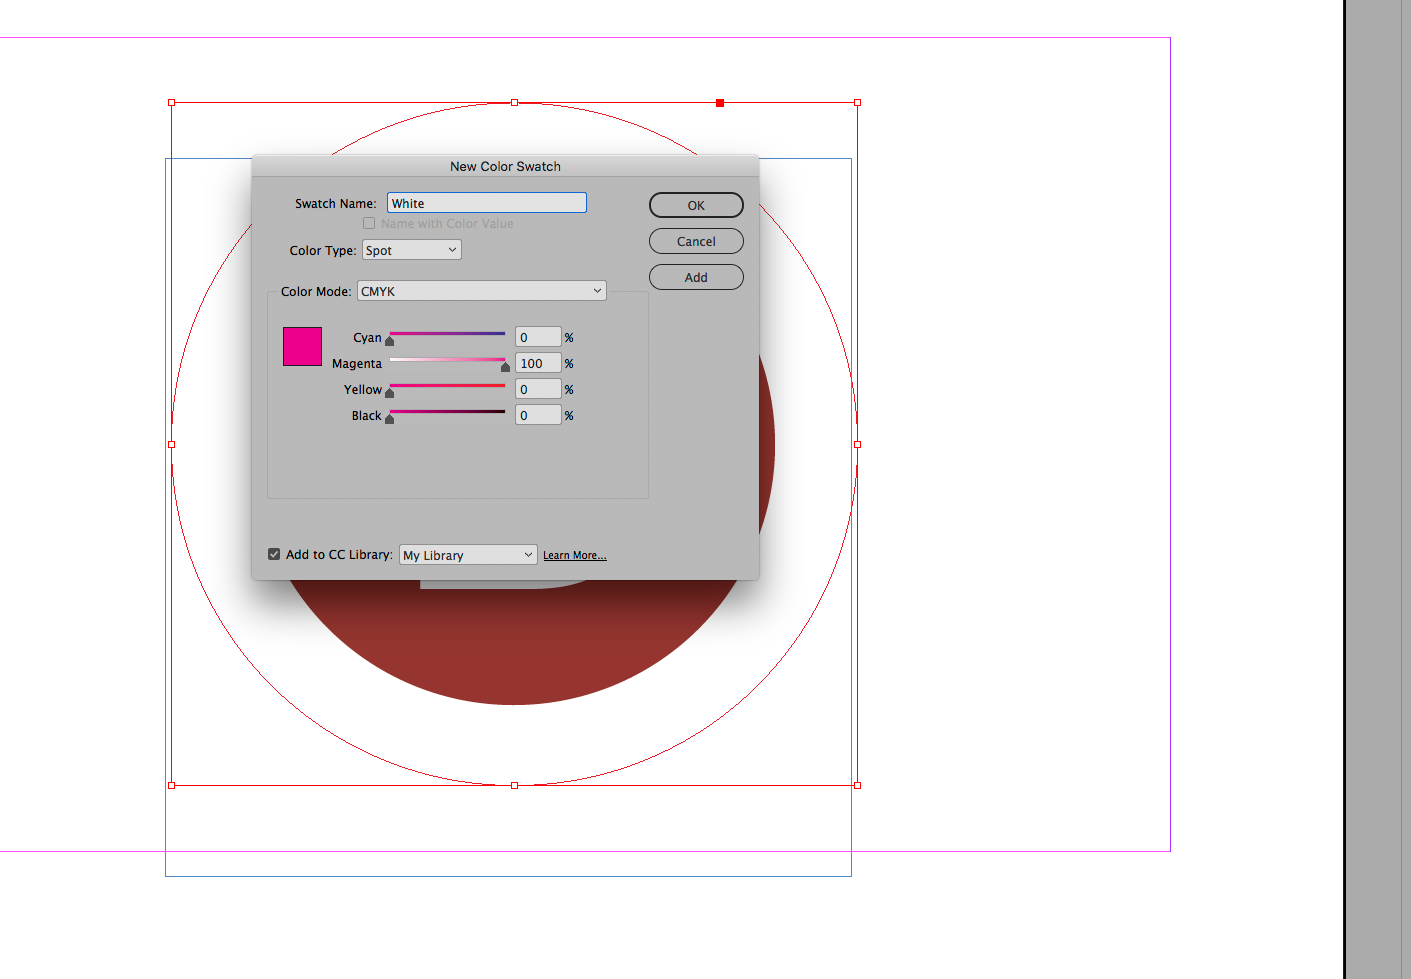 Creating a White swatch in the swatches panel.